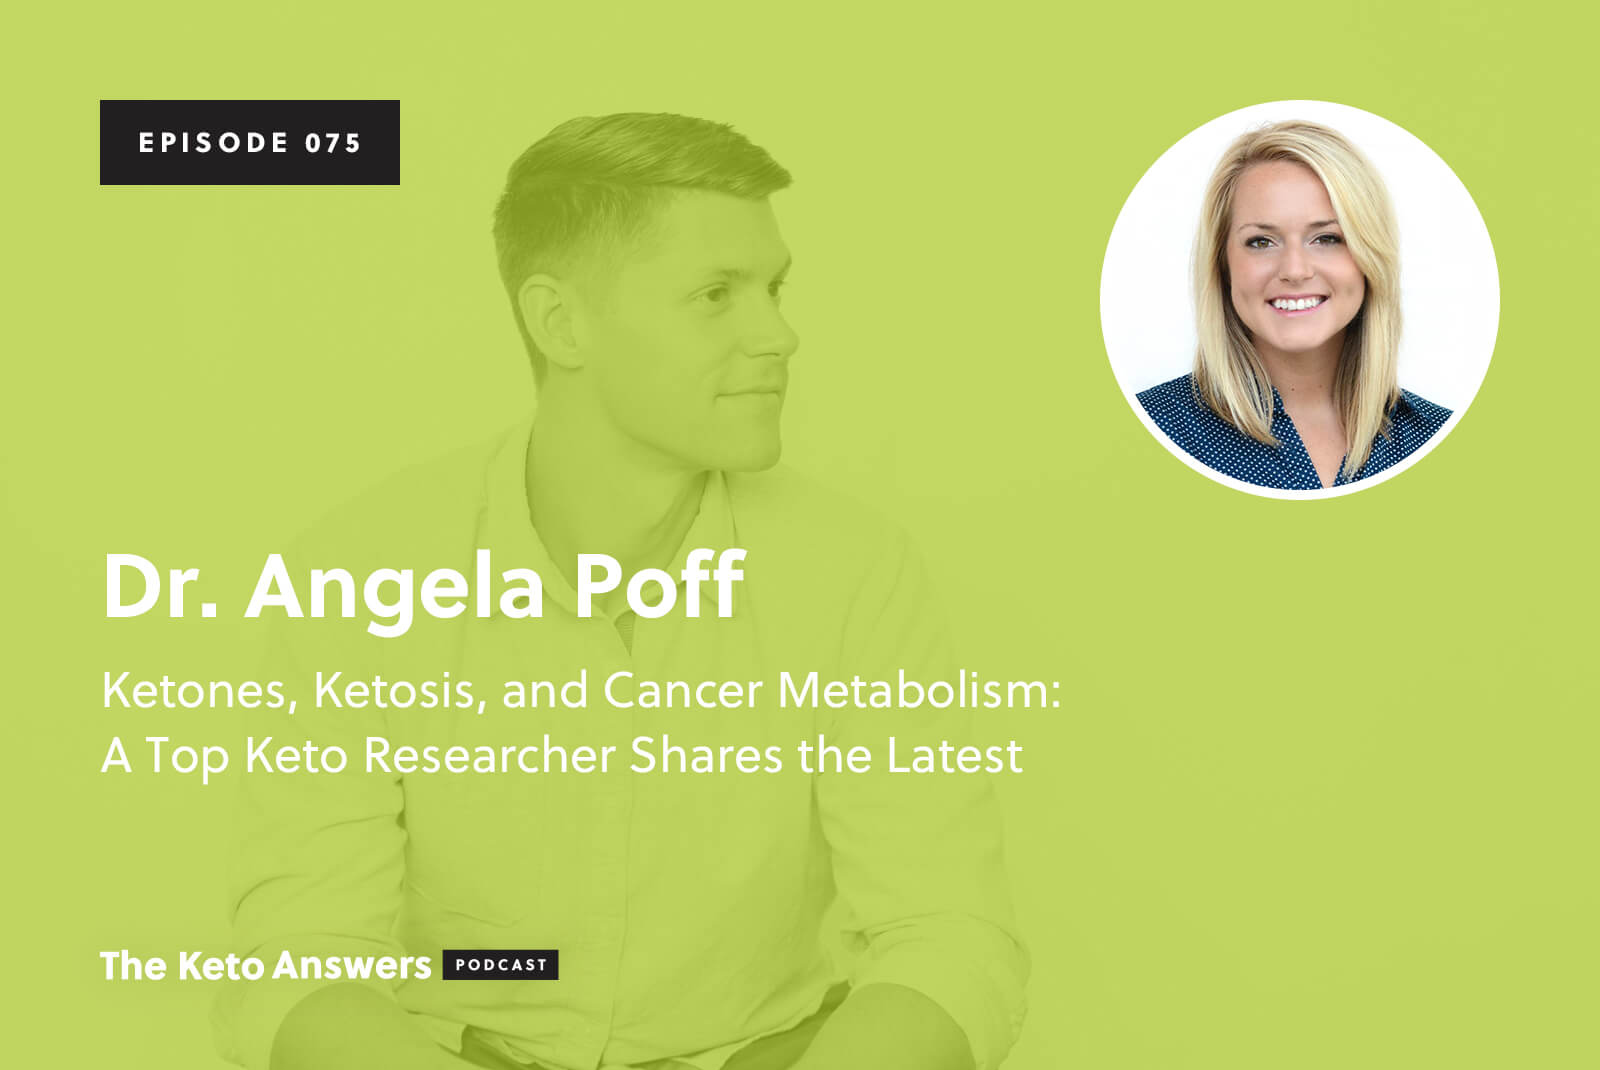 075: Dr. Angela Poff – Ketones, Ketosis, and Cancer Metabolism: A Top Keto Researcher Shares the Latest